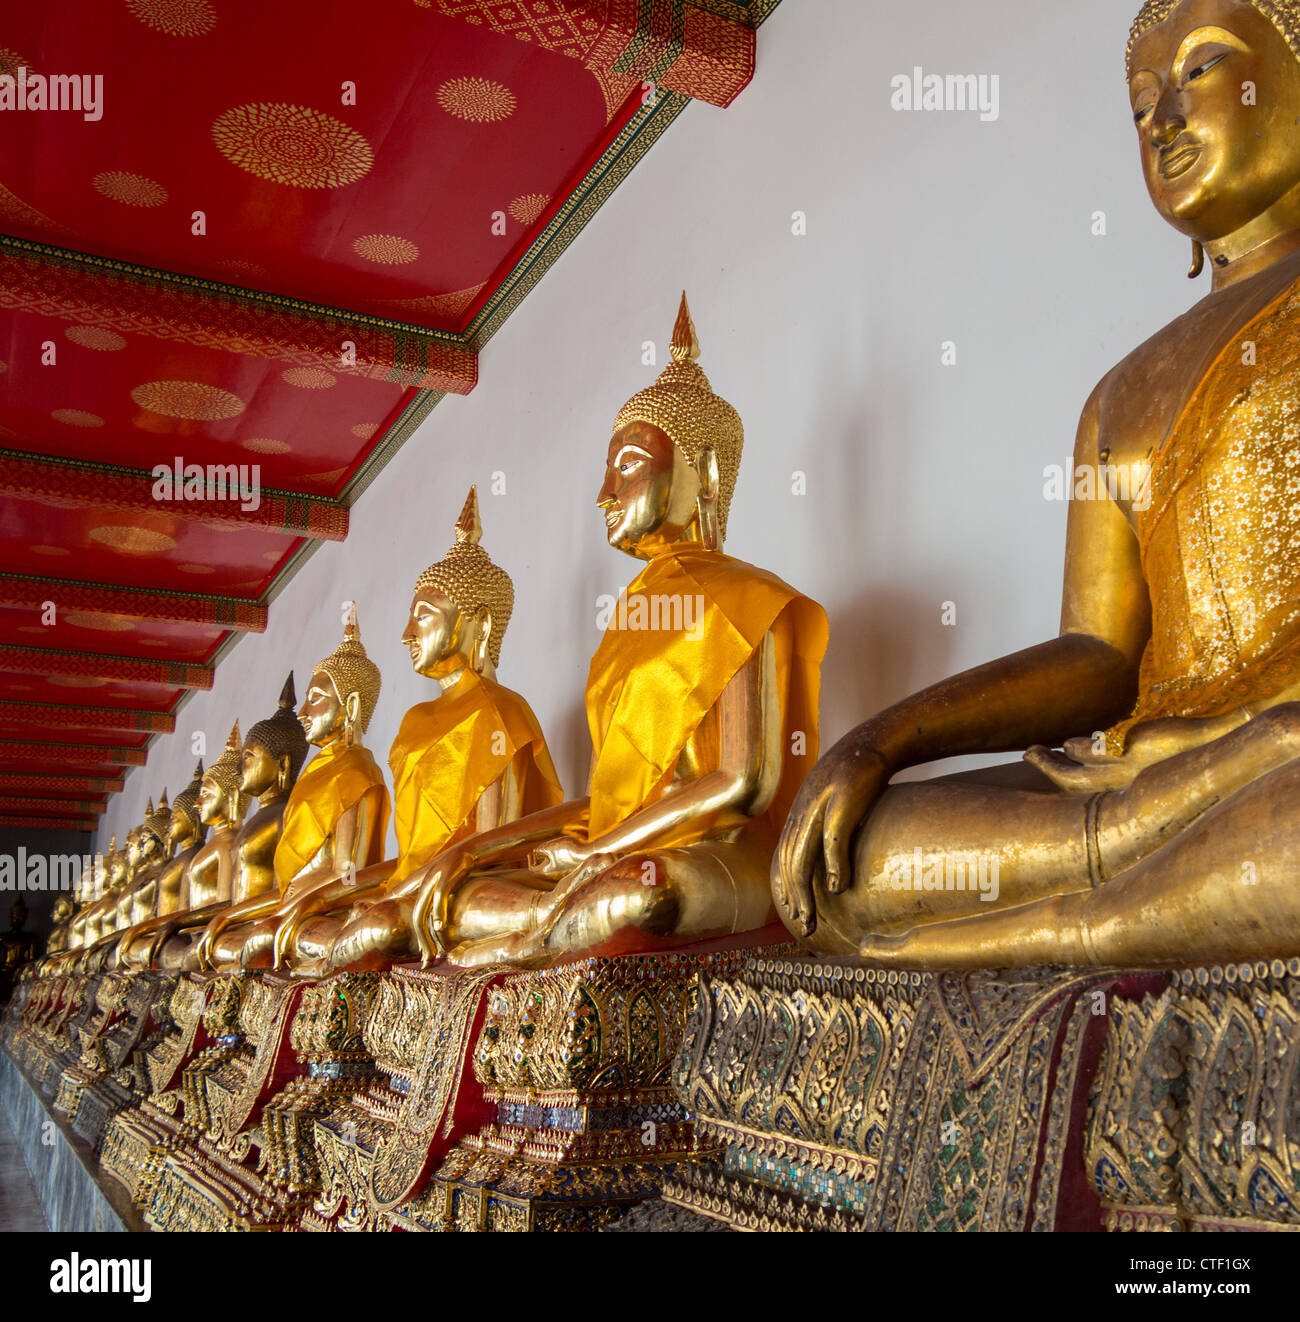 Row of golden buddha statues in Wat Po temple near Bangkok, Thailand - Stock Image